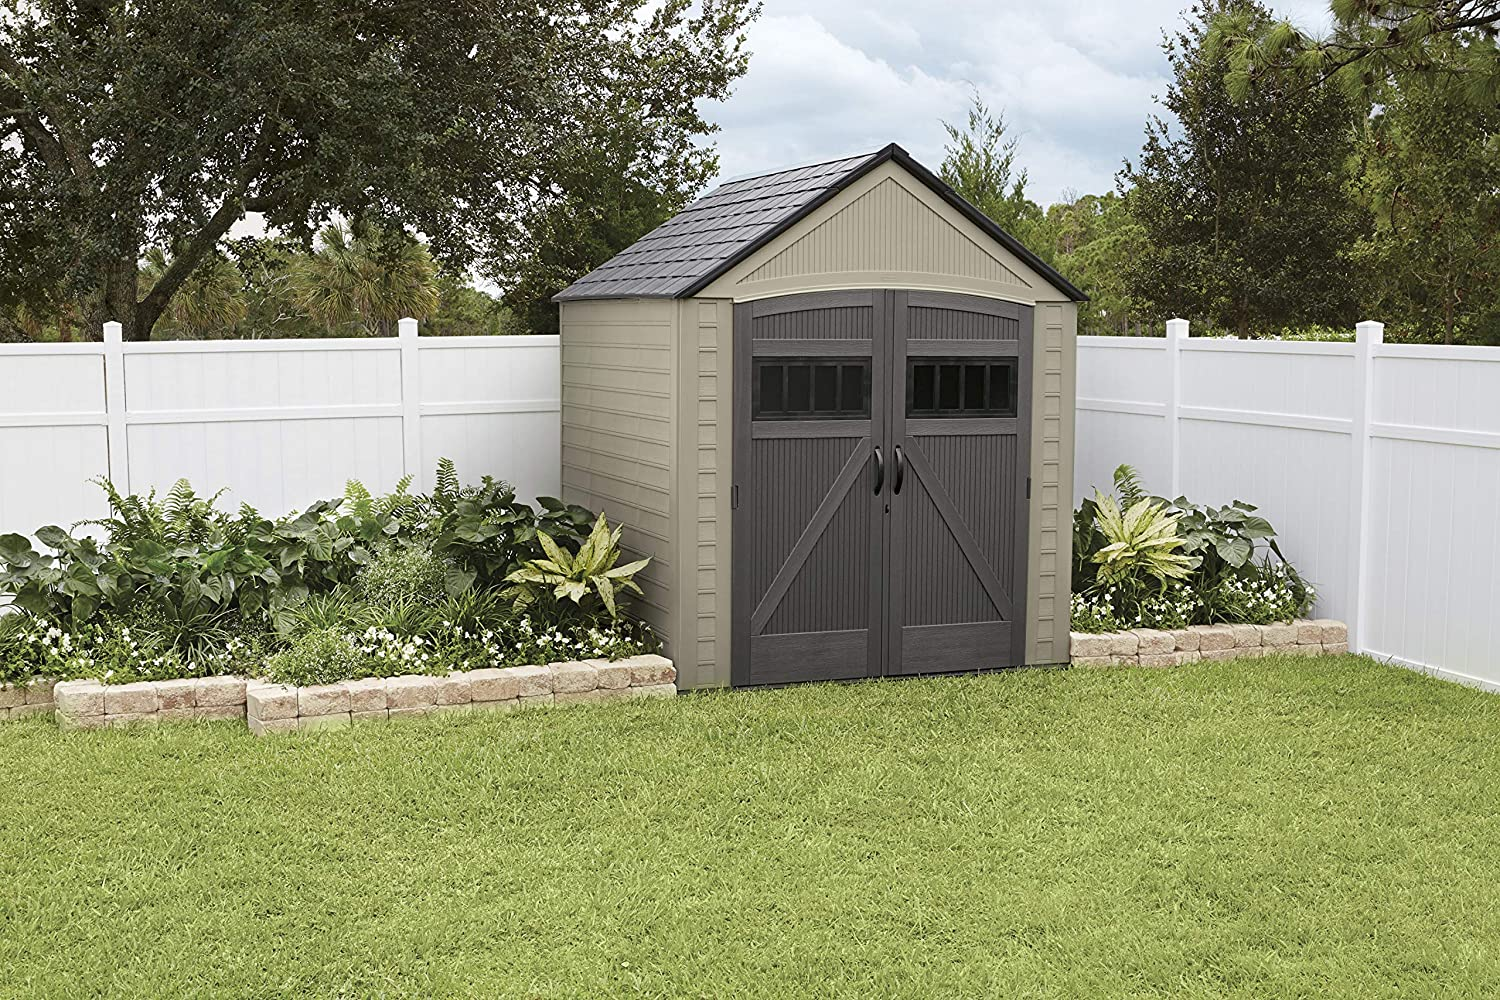 Rubbermaid Roughneck Storage Shed 5x4 Faint Maple and Brown